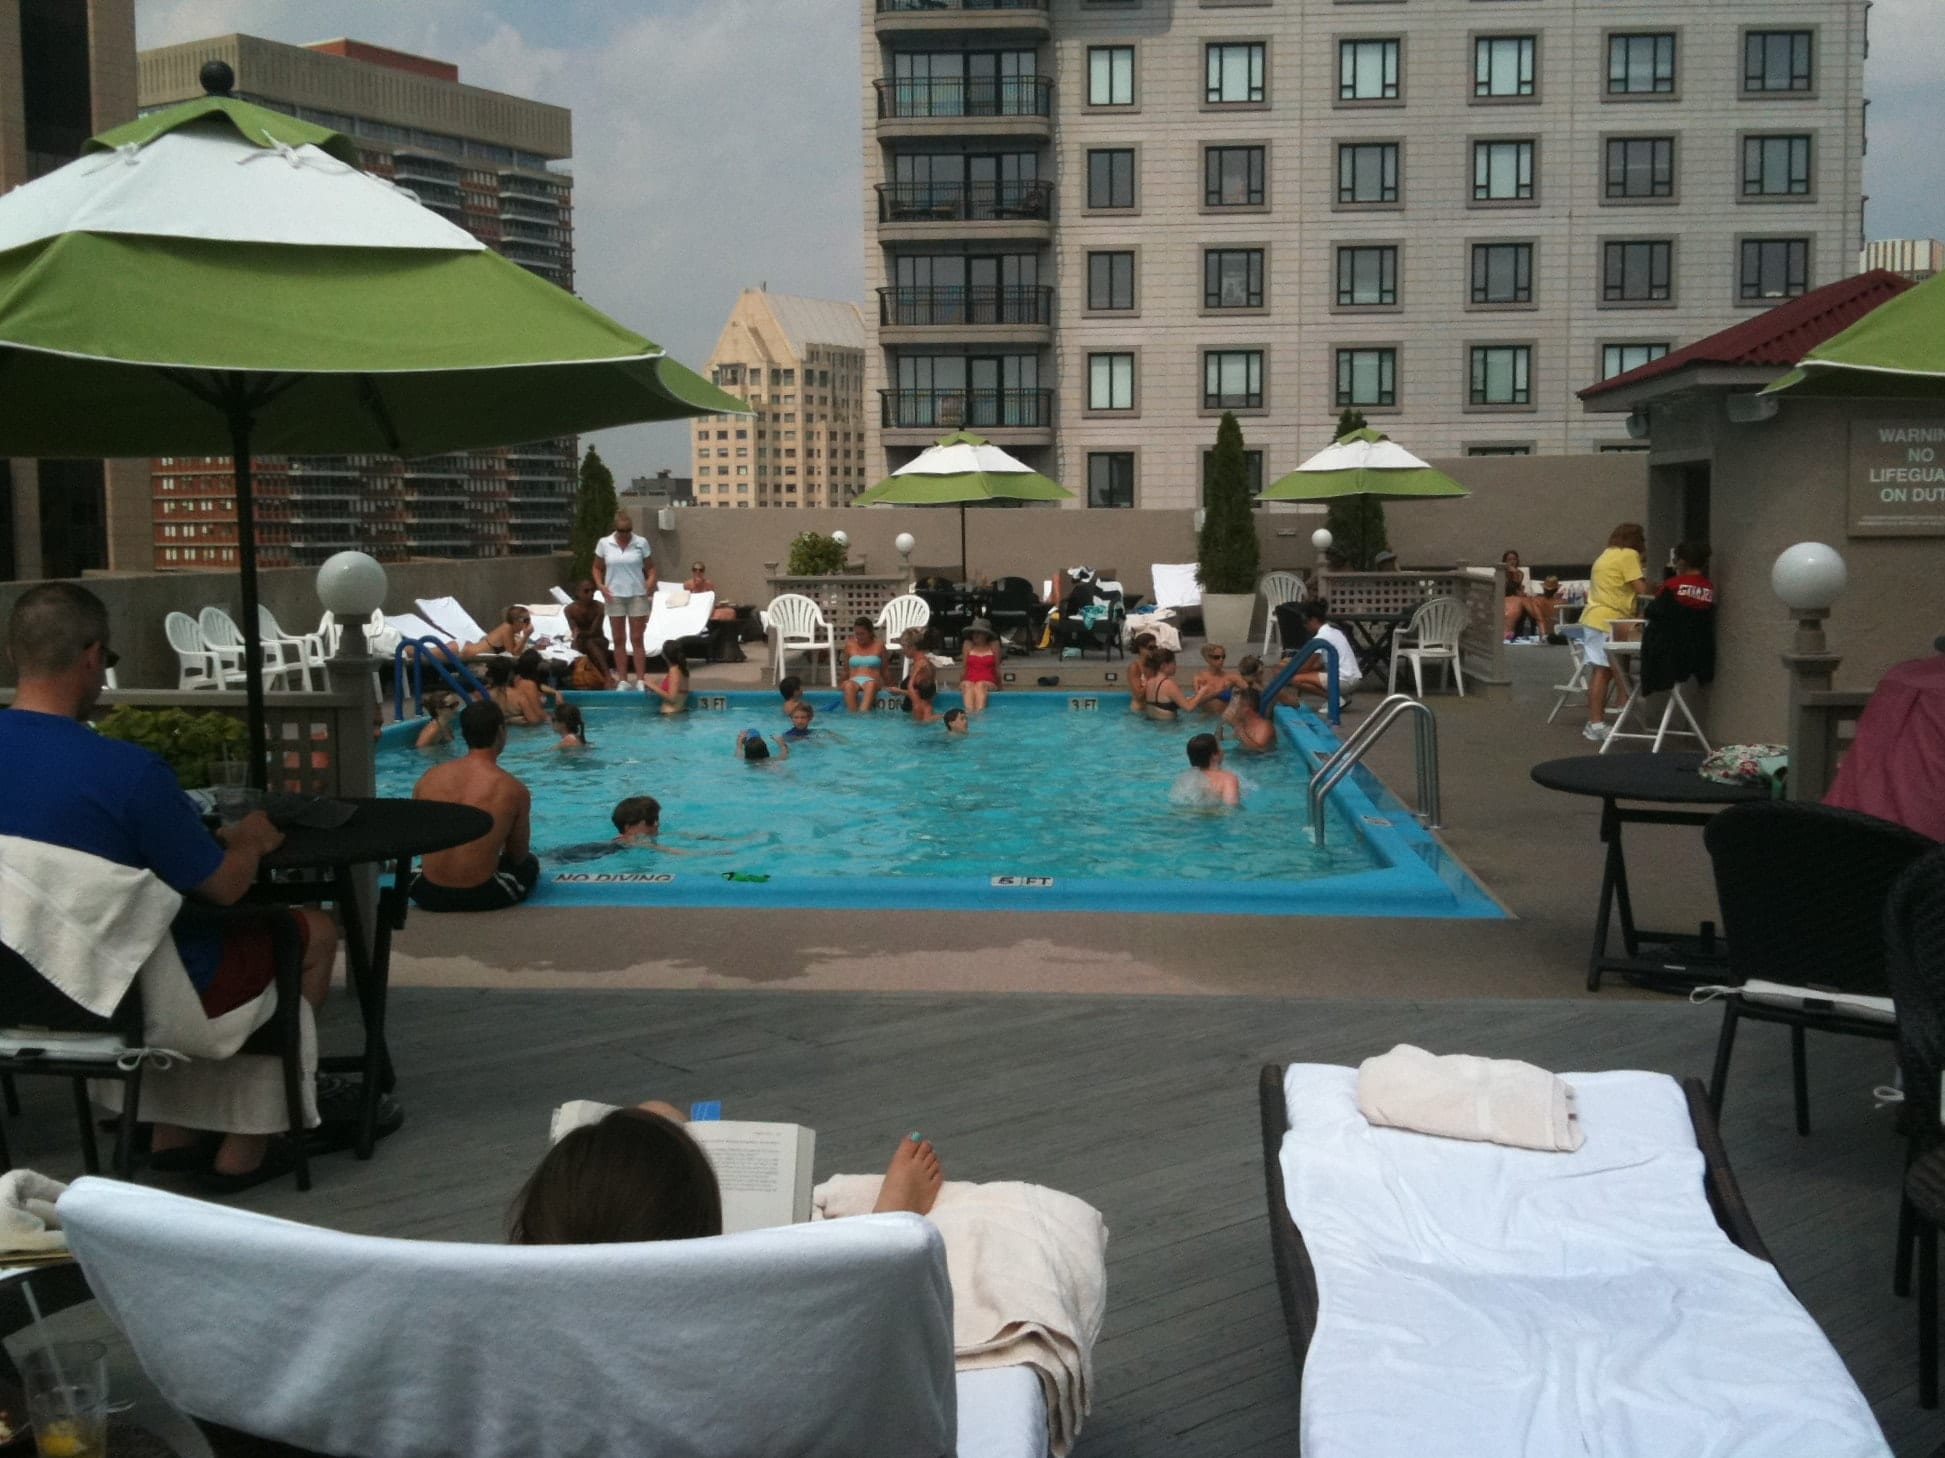 boston rooftop pool review a day at the colonnade adventurous kate